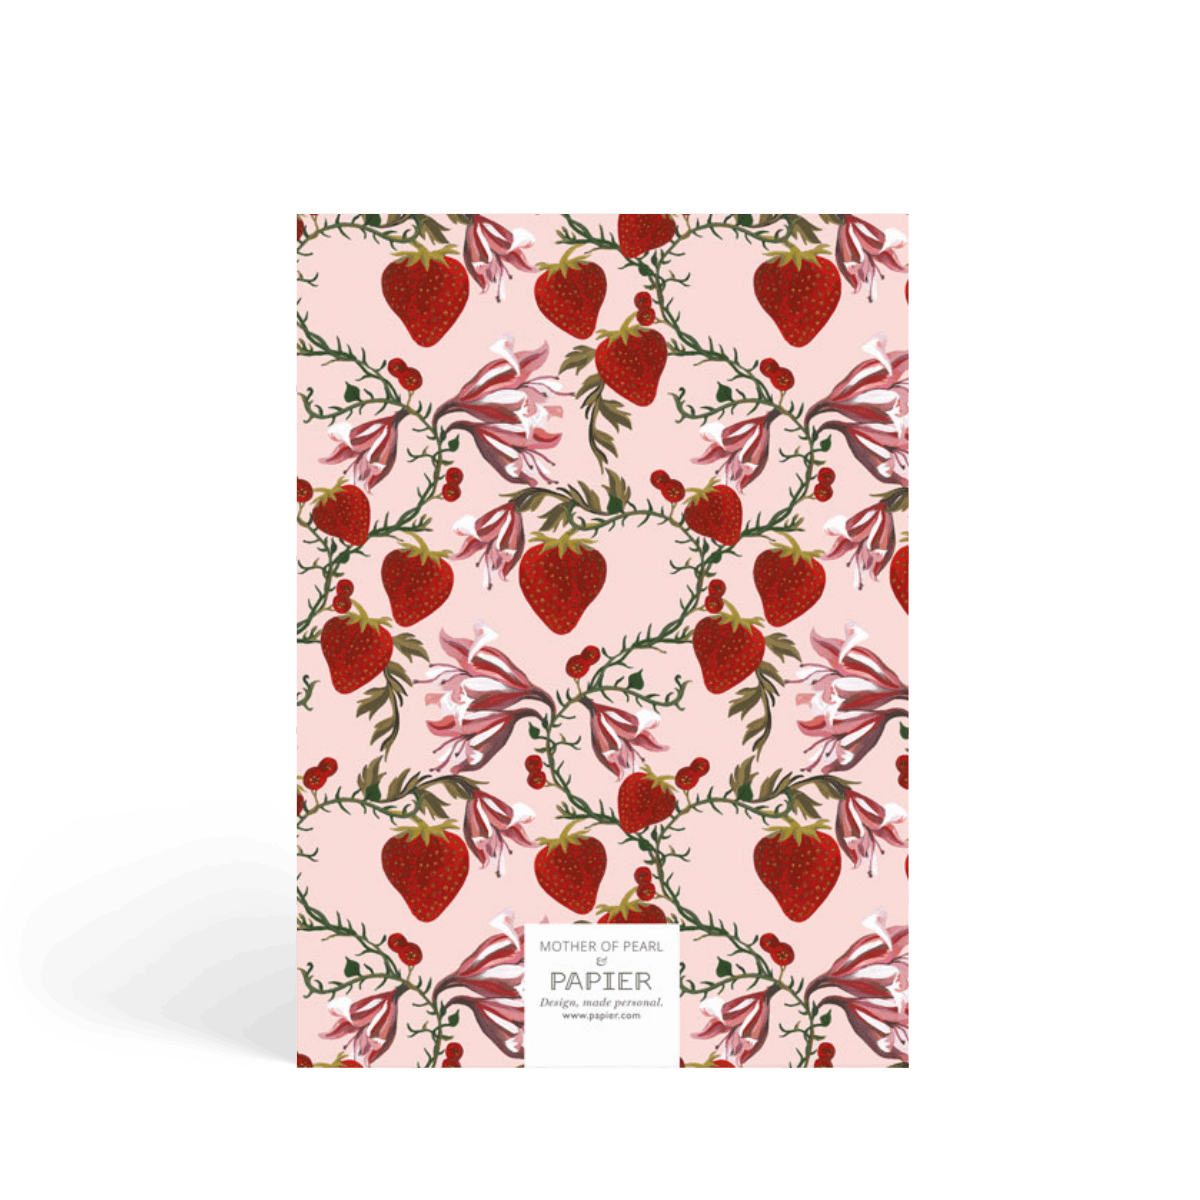 Https%3a%2f%2fwww.papier.com%2fproduct image%2f54095%2f5%2fstrawberry floral 13012 back 1542292166.png?ixlib=rb 1.1